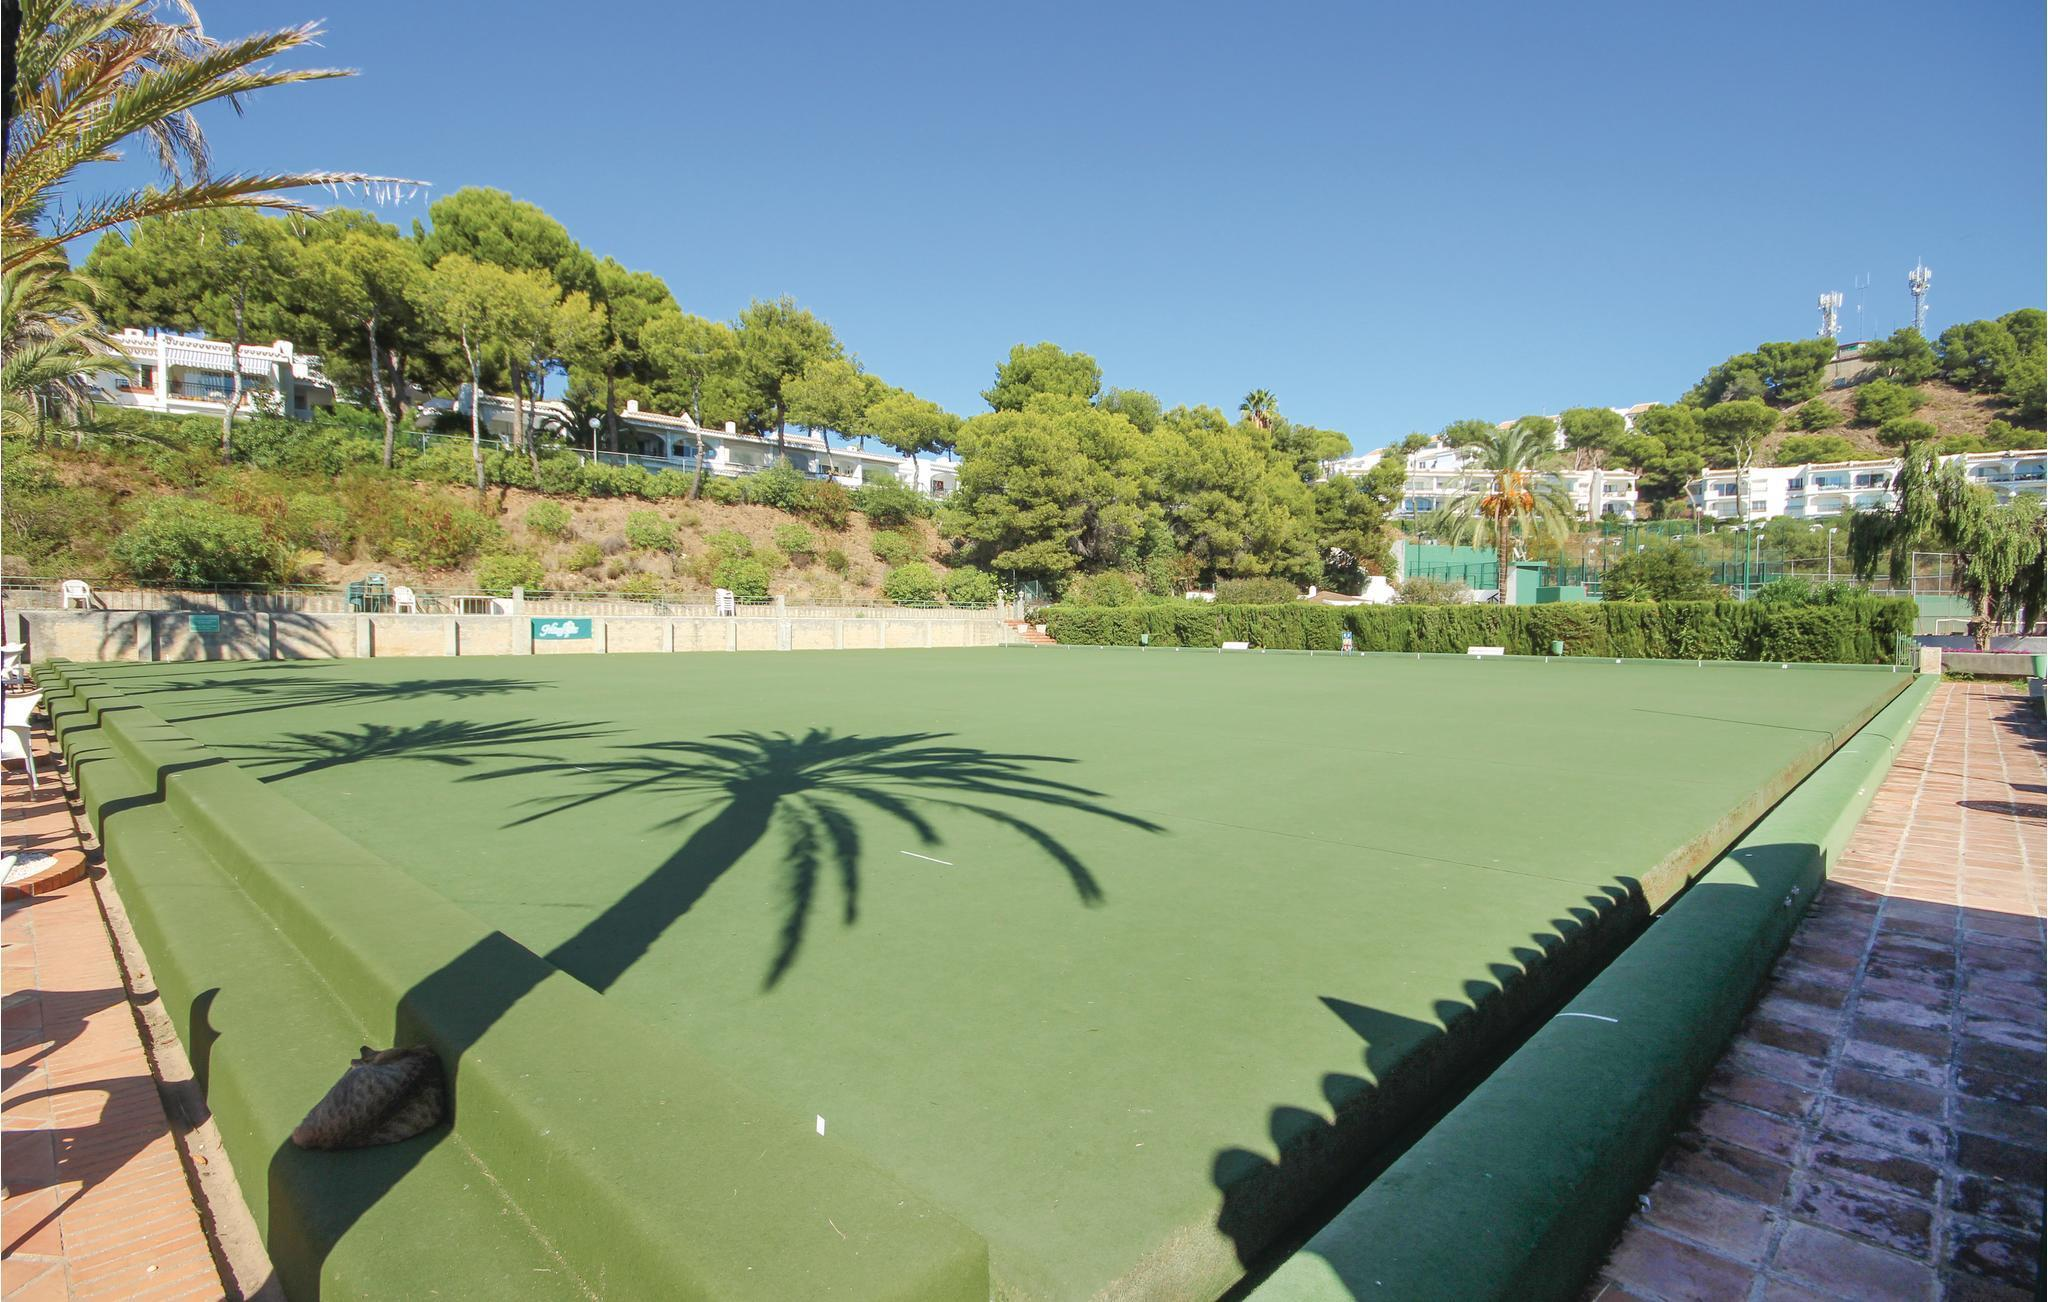 Holiday Home/Apartment - 4 persons - Monte B, Block 9, Apt - Mijas ...